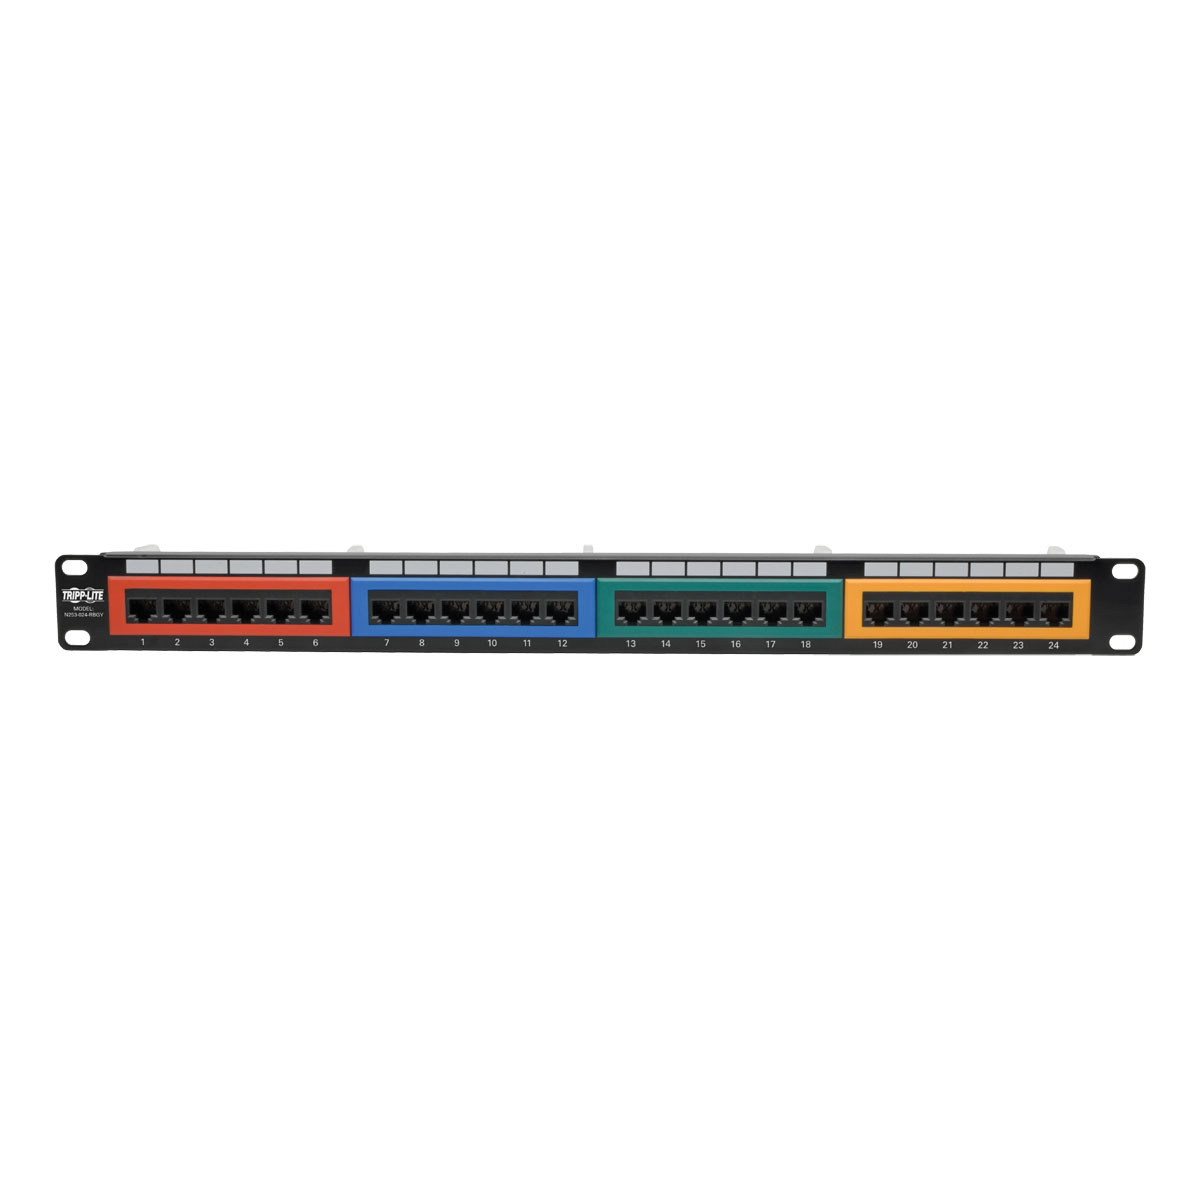 Tripp Lite 24 Port Cat6 Color Coded Patch Panel N253 024 Rbgy 568b Wiring